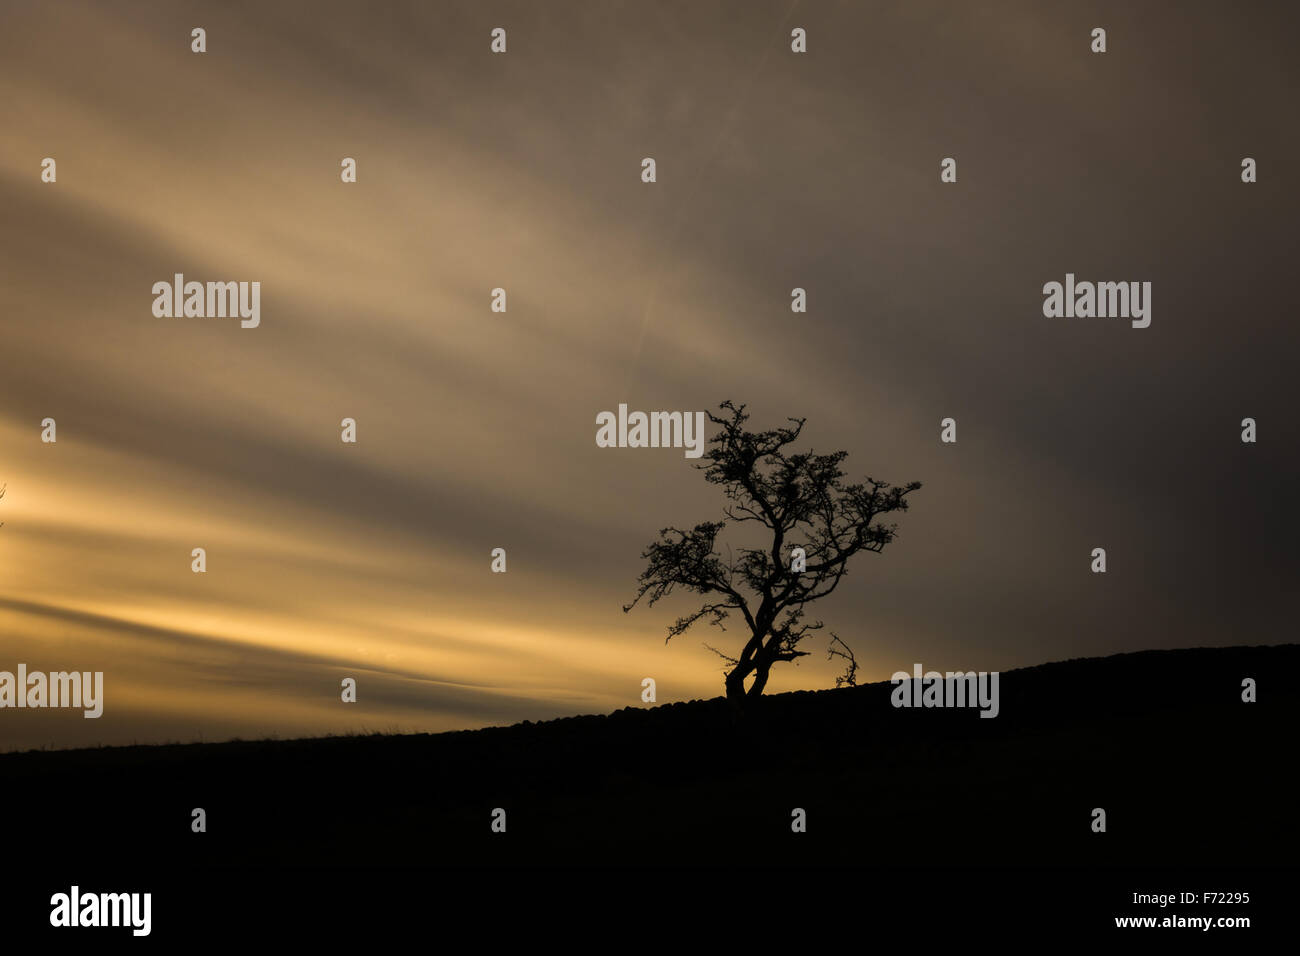 Single tree with a remarkable cloud formation behind - Stock Image